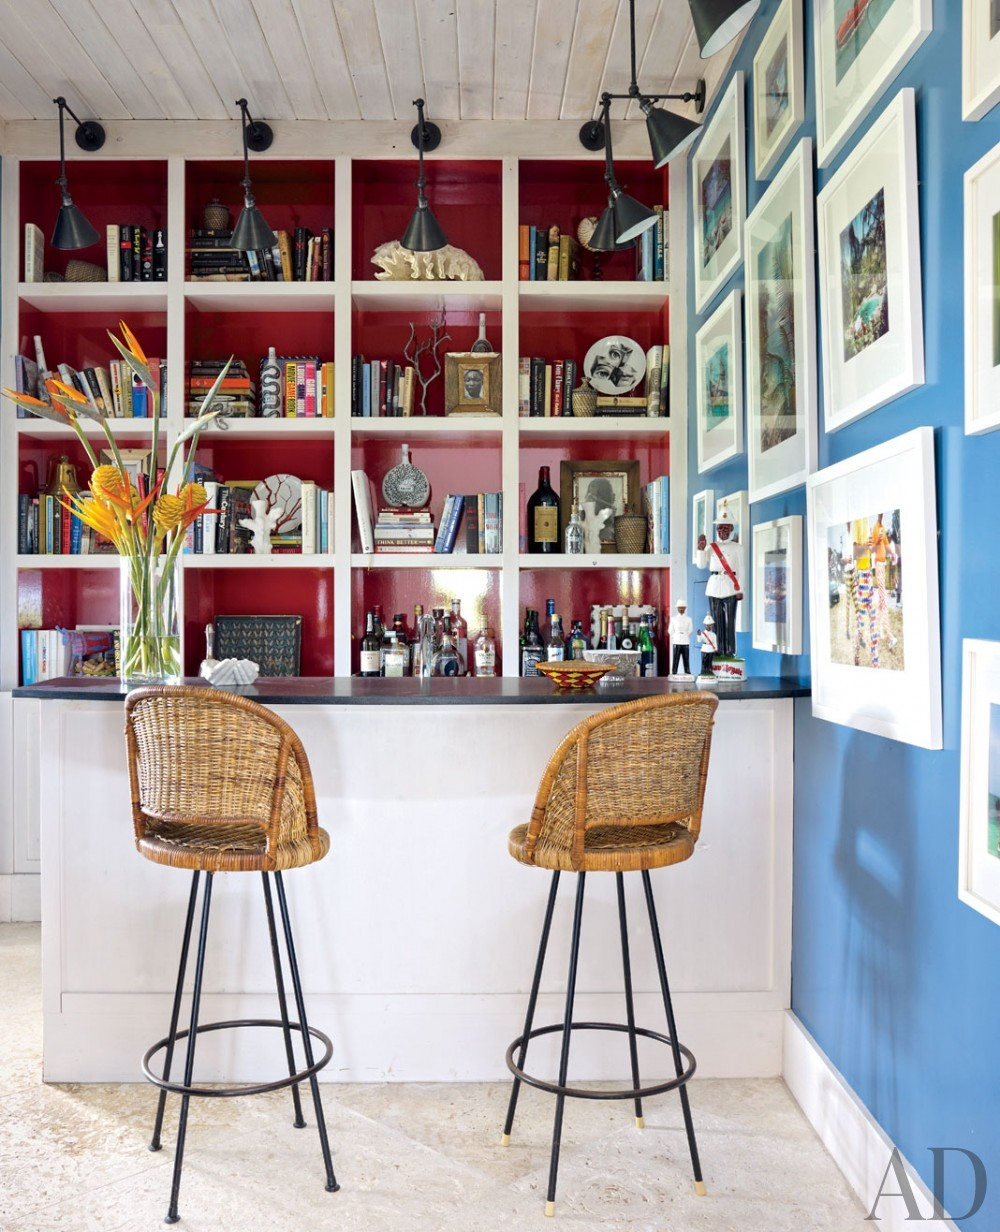 Beach Media/Game Room by Alessandra Branca in Harbour Island, Bahamas